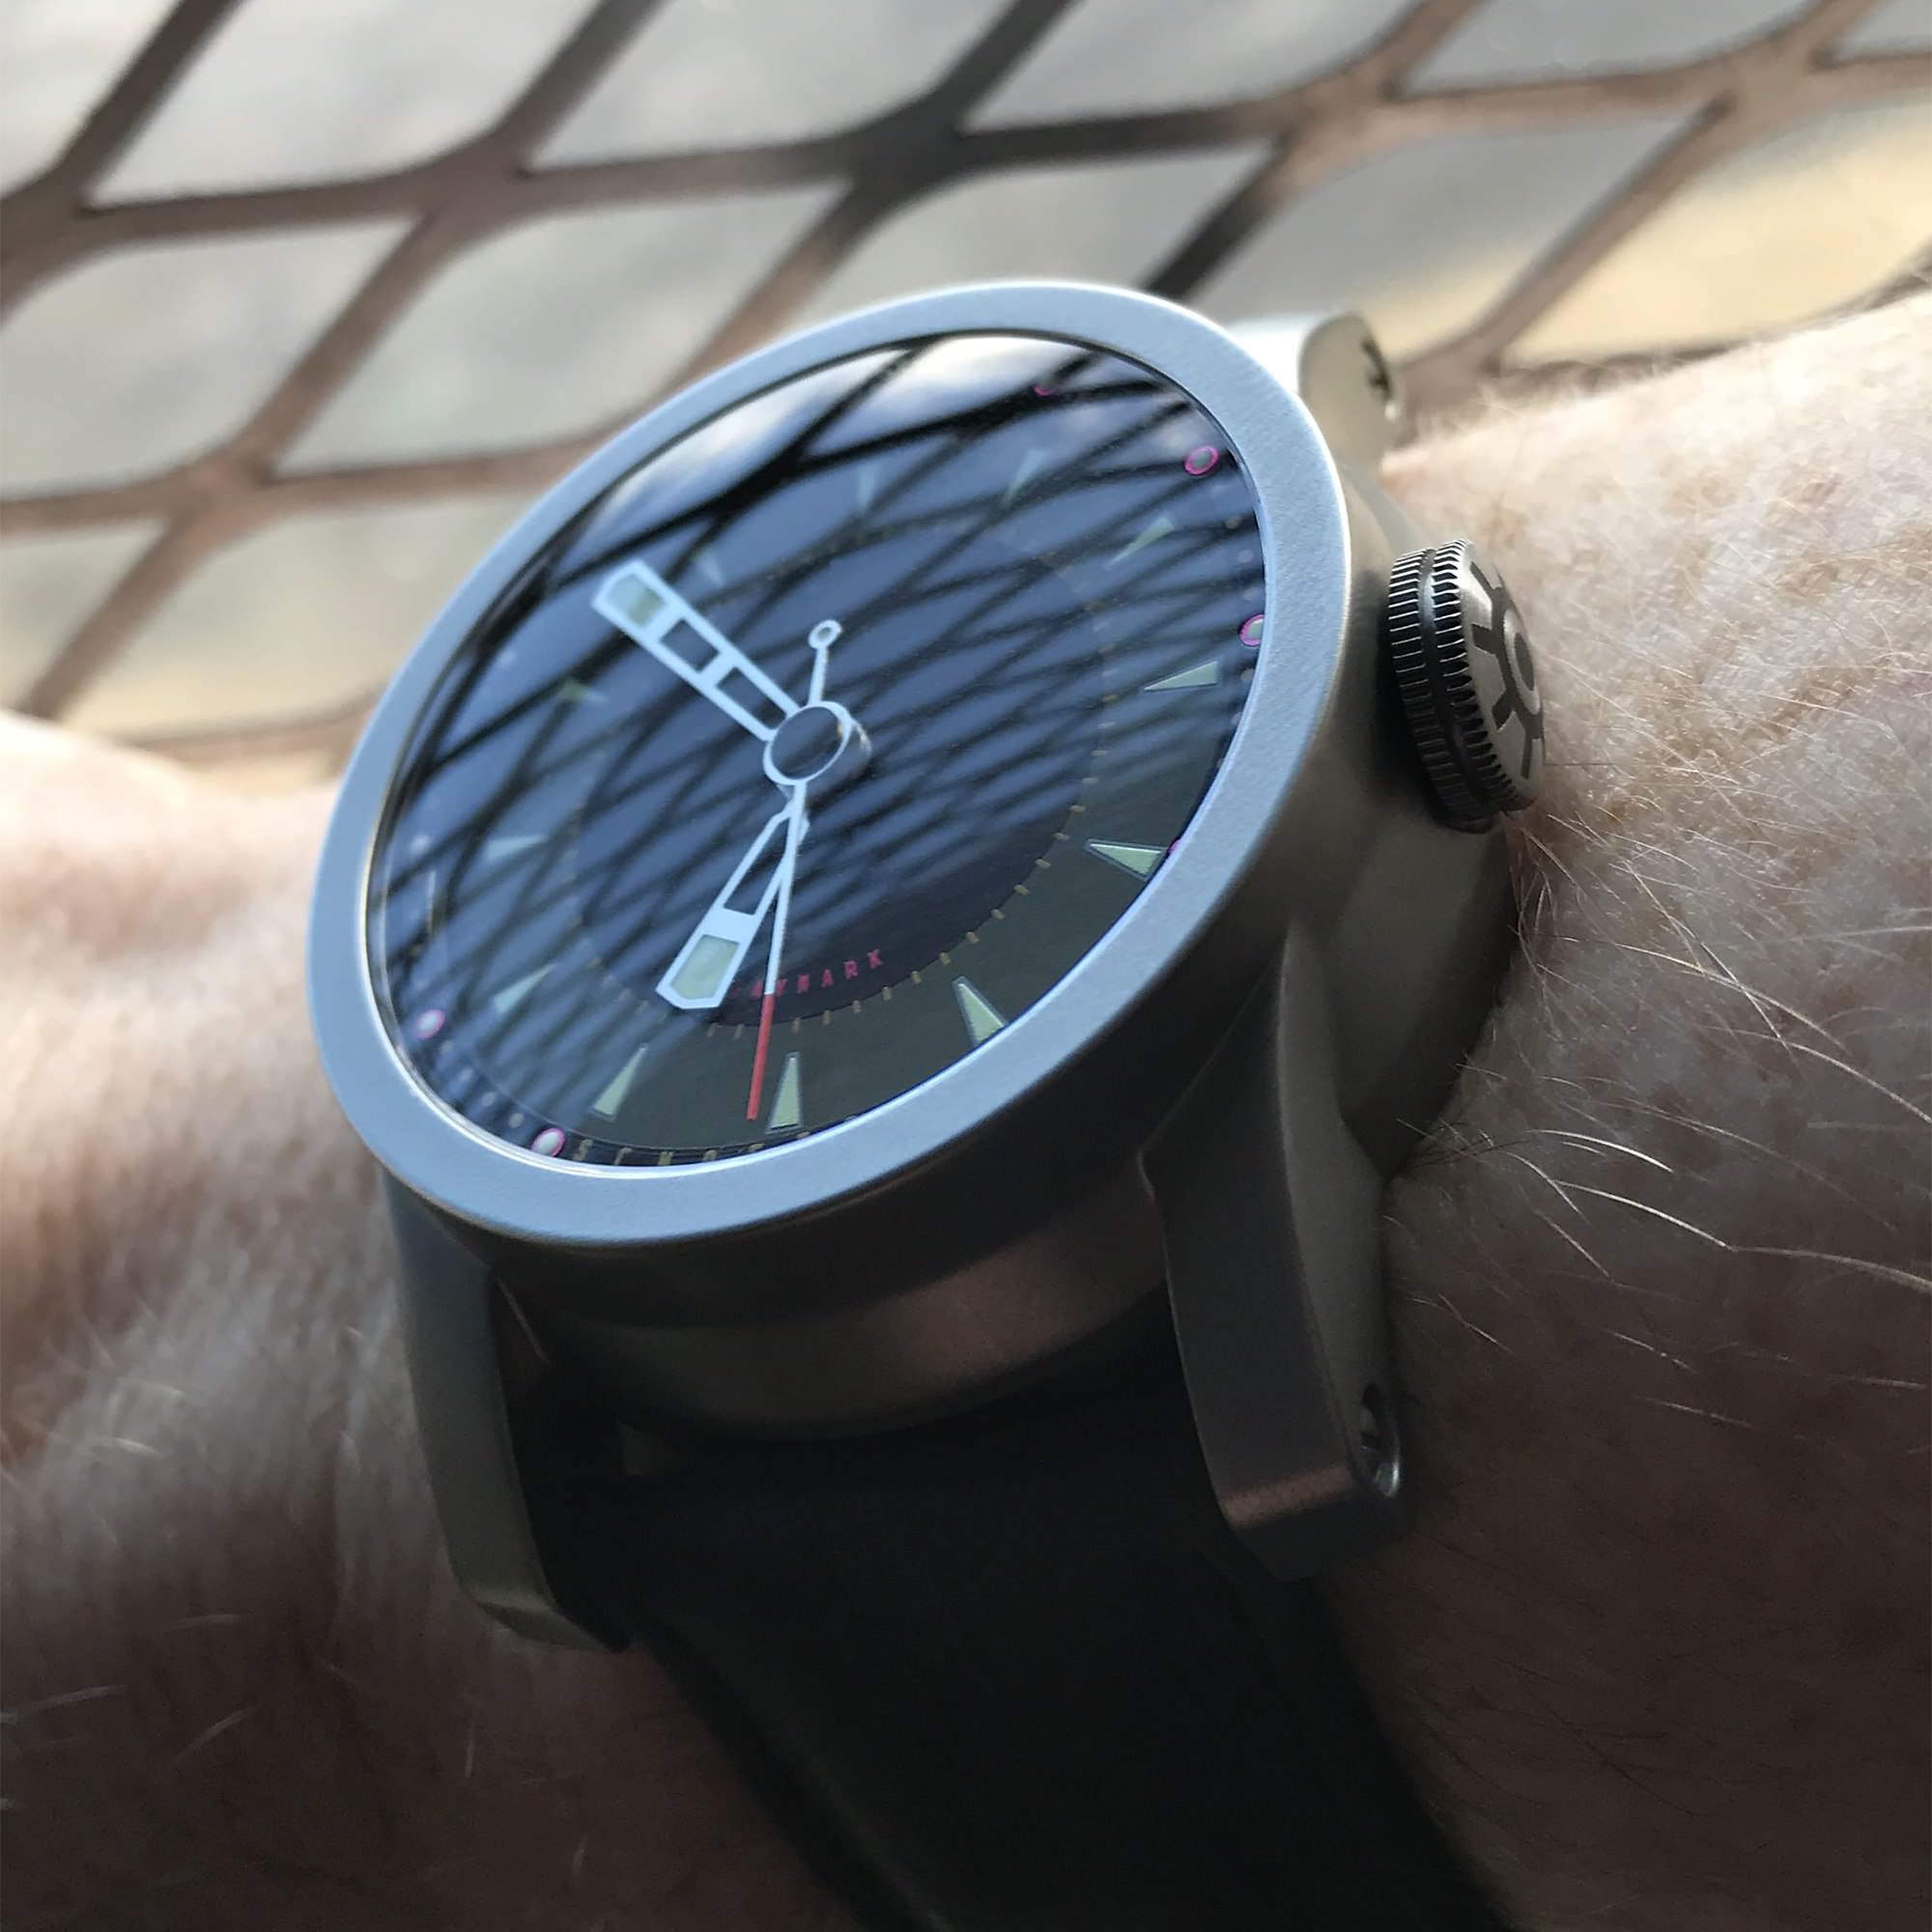 Daymark wrist watch